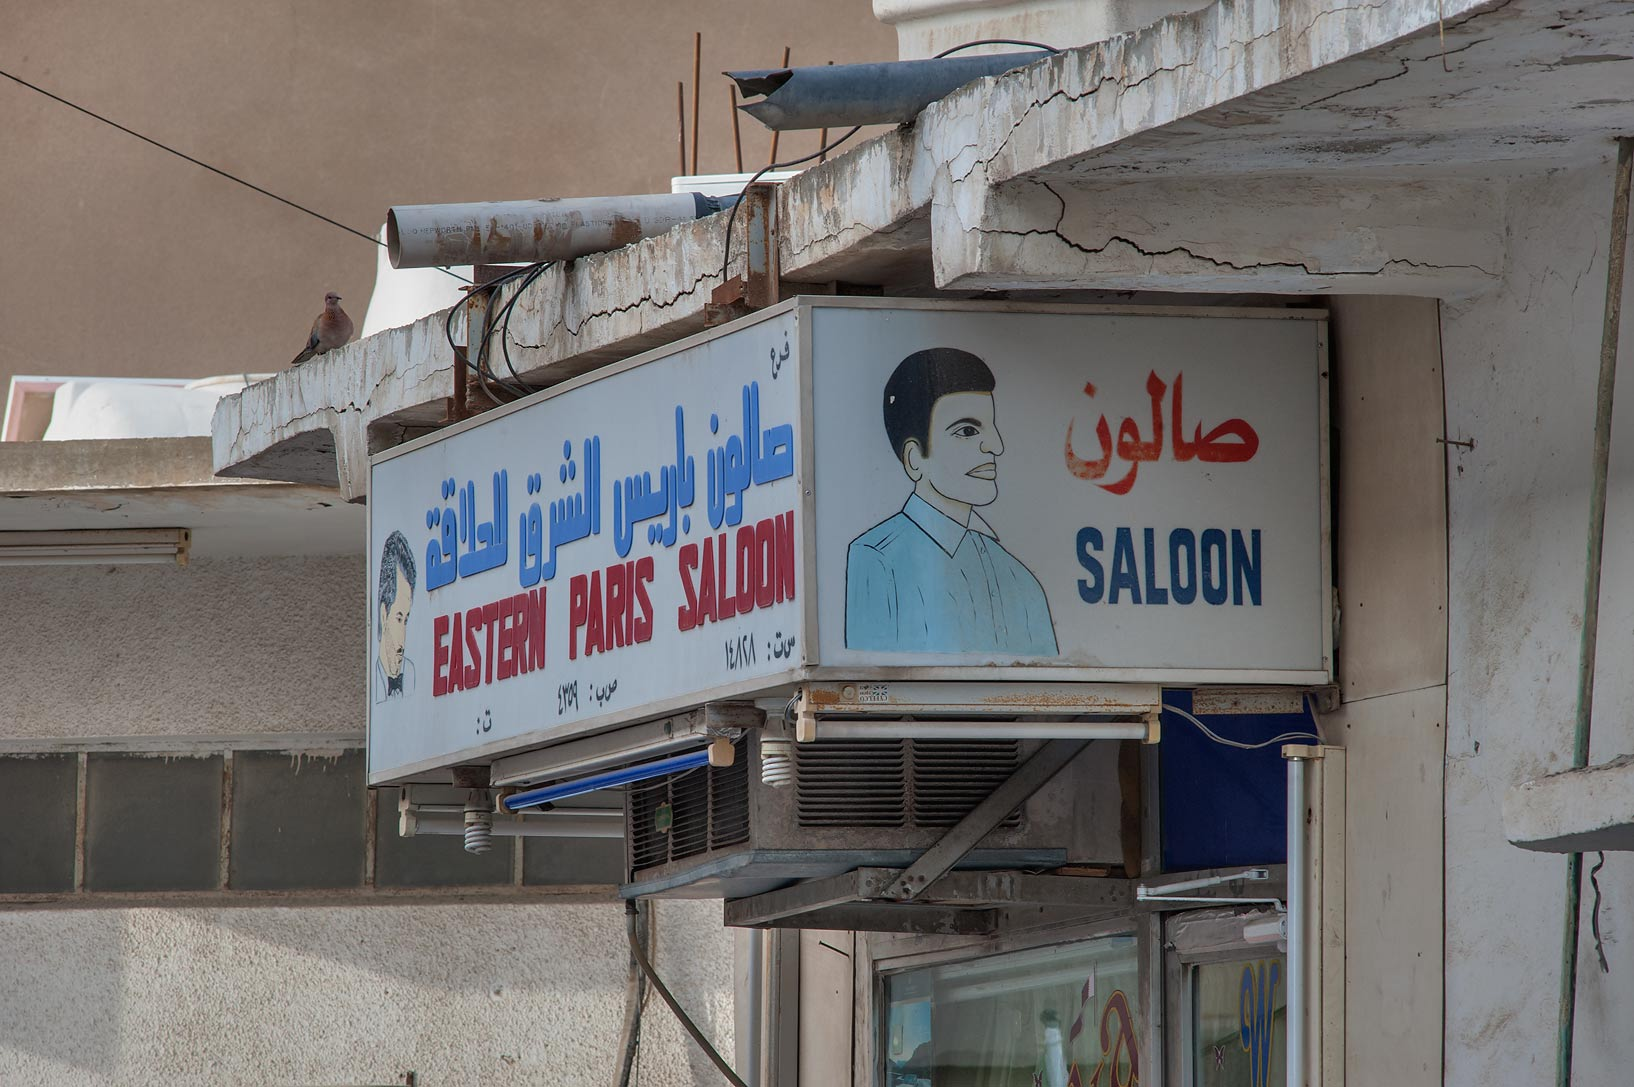 Eastern Paris Saloon on Ibn Hanbal St. in Musheirib area. Doha, Qatar